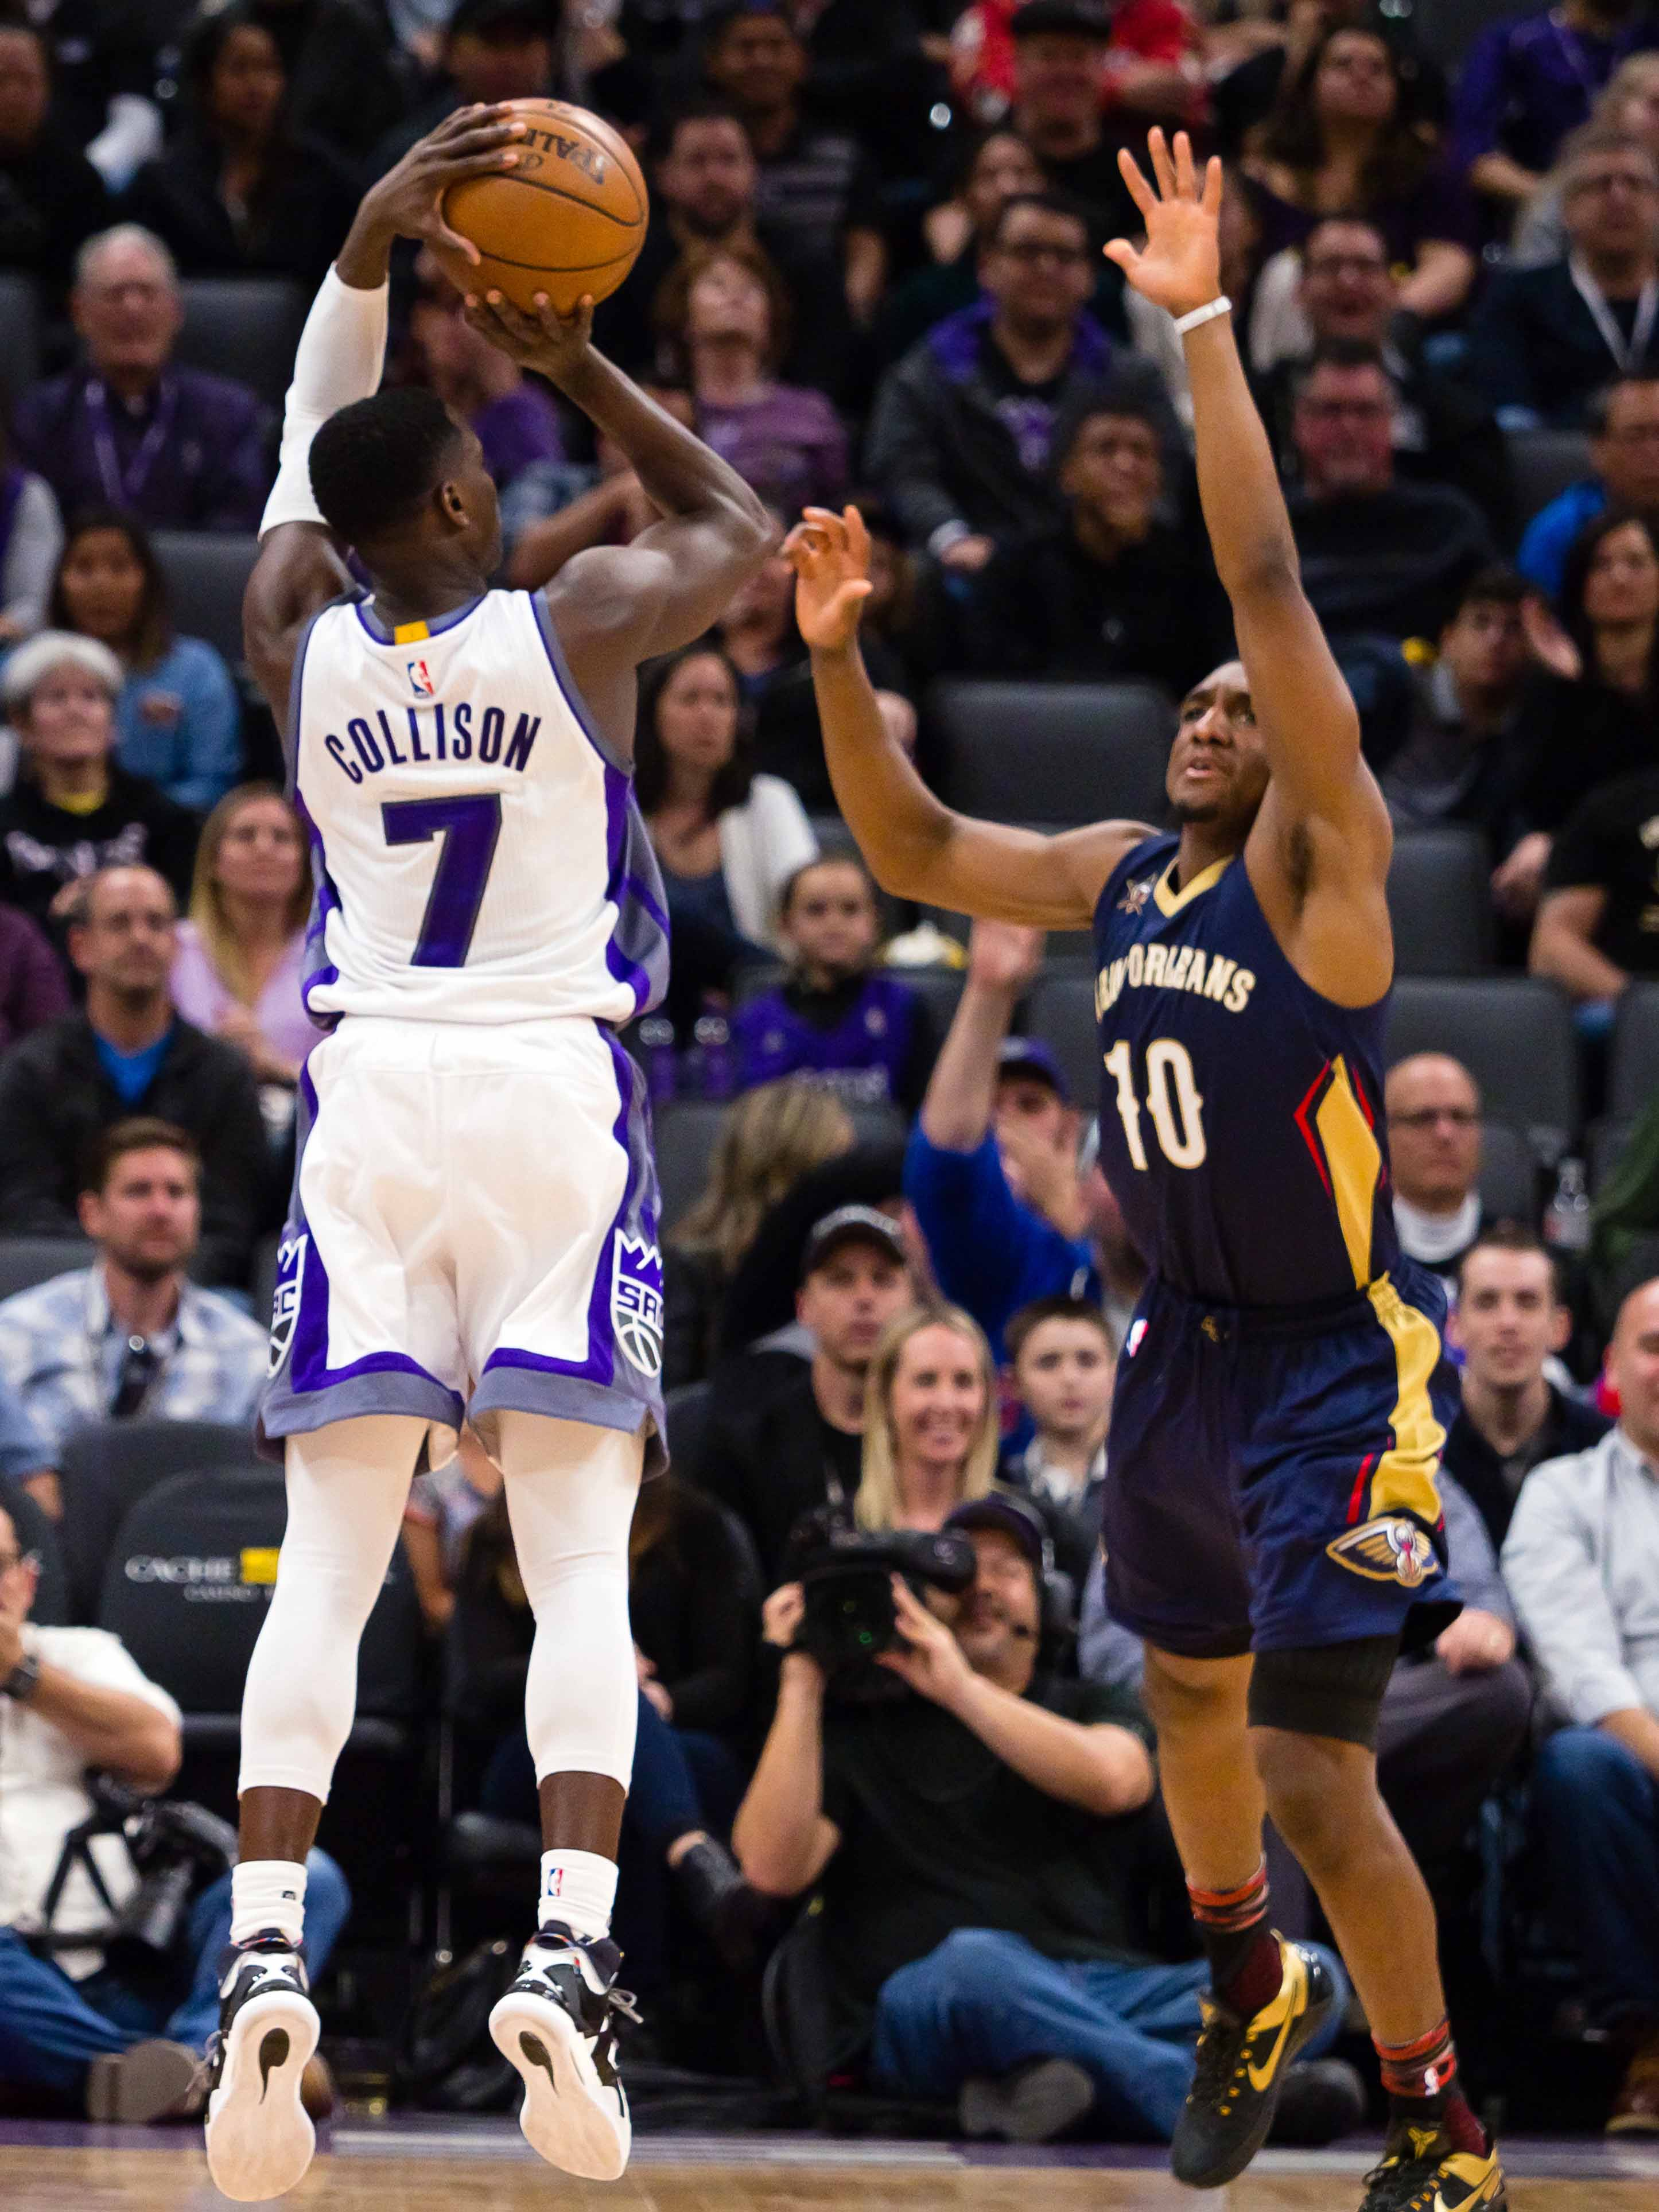 Feb 12, 2017; Sacramento, CA, USA; Sacramento Kings guard Darren Collison (7) scores against New Orleans Pelicans guard Langston Galloway (10) during the second quarter at Golden 1 Center. Mandatory Credit: Kelley L Cox-USA TODAY Sports